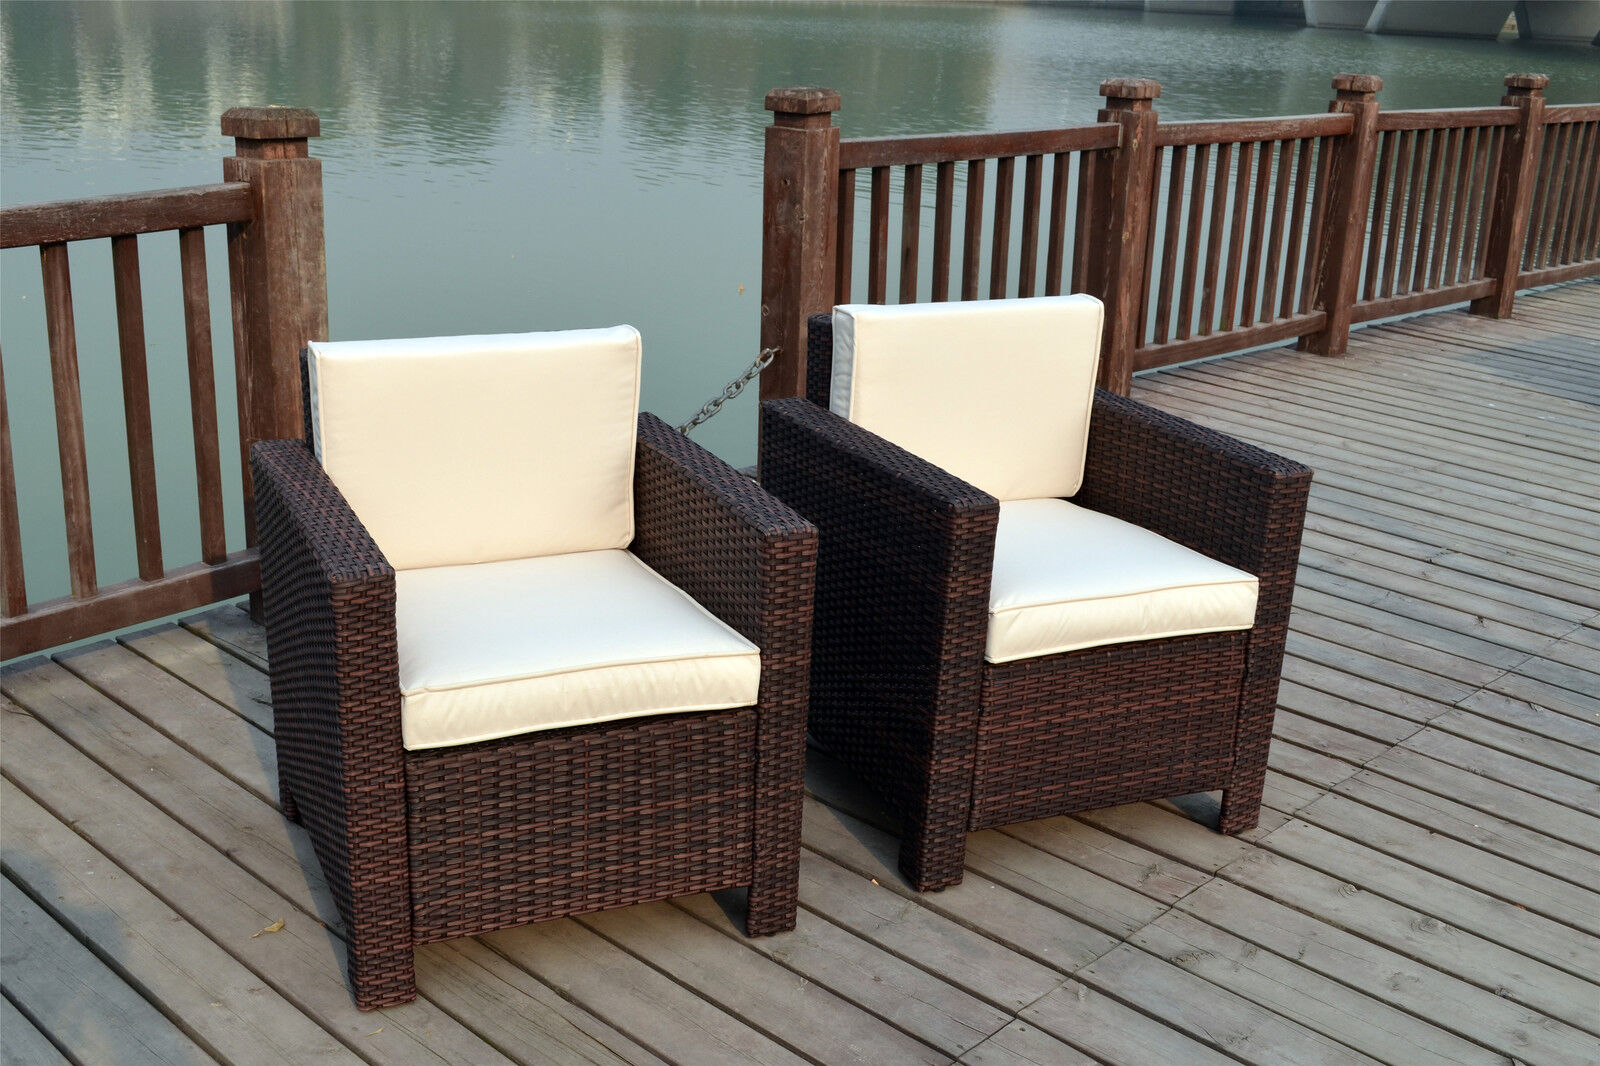 NEW SINGLE CHAIRS RATTAN WICKER CONSERVATORY OUTDOOR